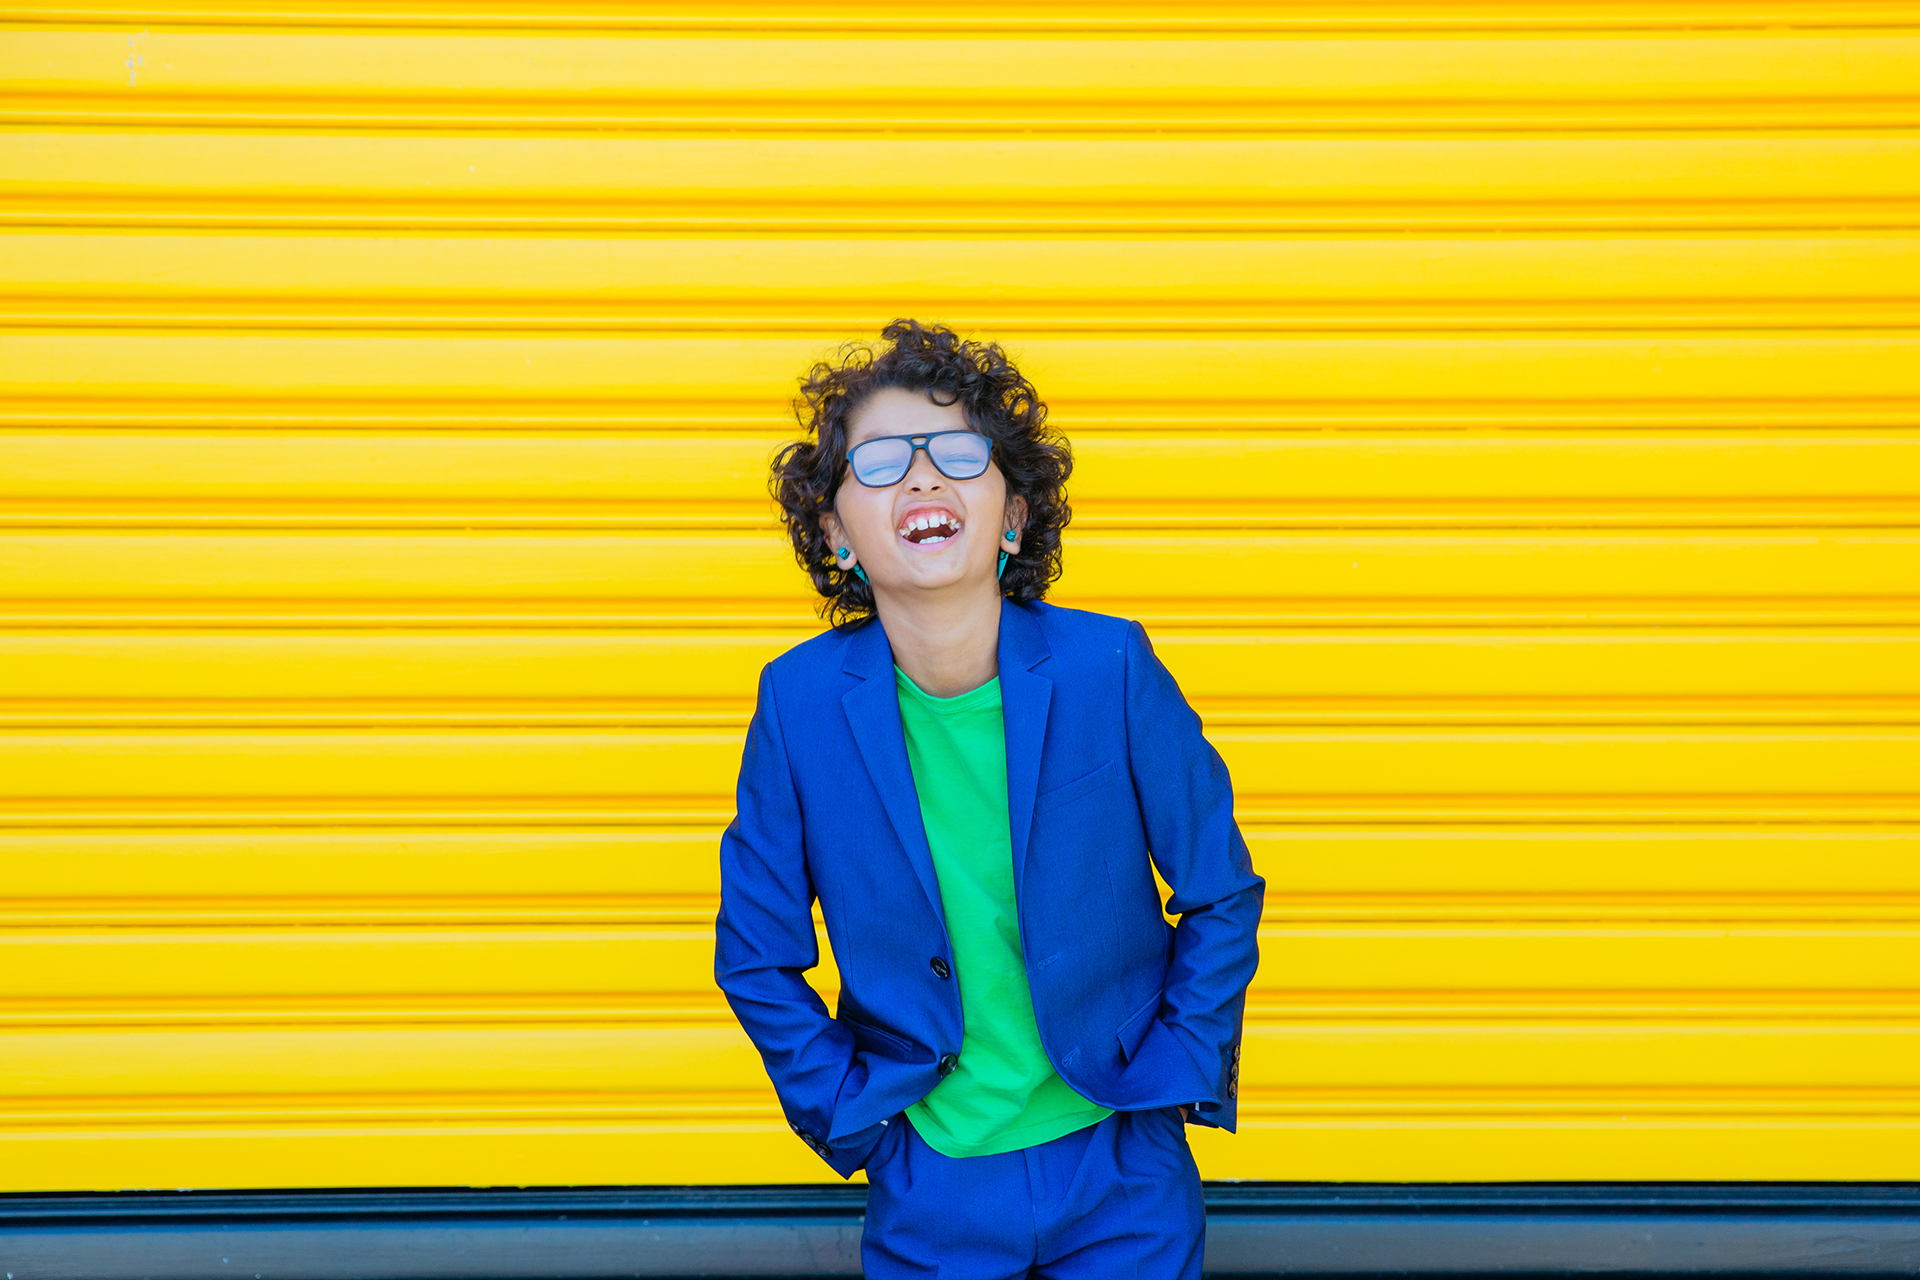 This is a portrait of a young boy taken my Auckland based photographer Mala Photography. The boys is dressed in a blue suit with a green t-shirt. The boy has long, curly hair, is wearing glasses and earrings. He has his hands in his pockets and looks very cool and stylish. He is laughing hysterically with his head up and eyes closed. The image is striking as the boy is standing in front of a bright, yellow roller door.